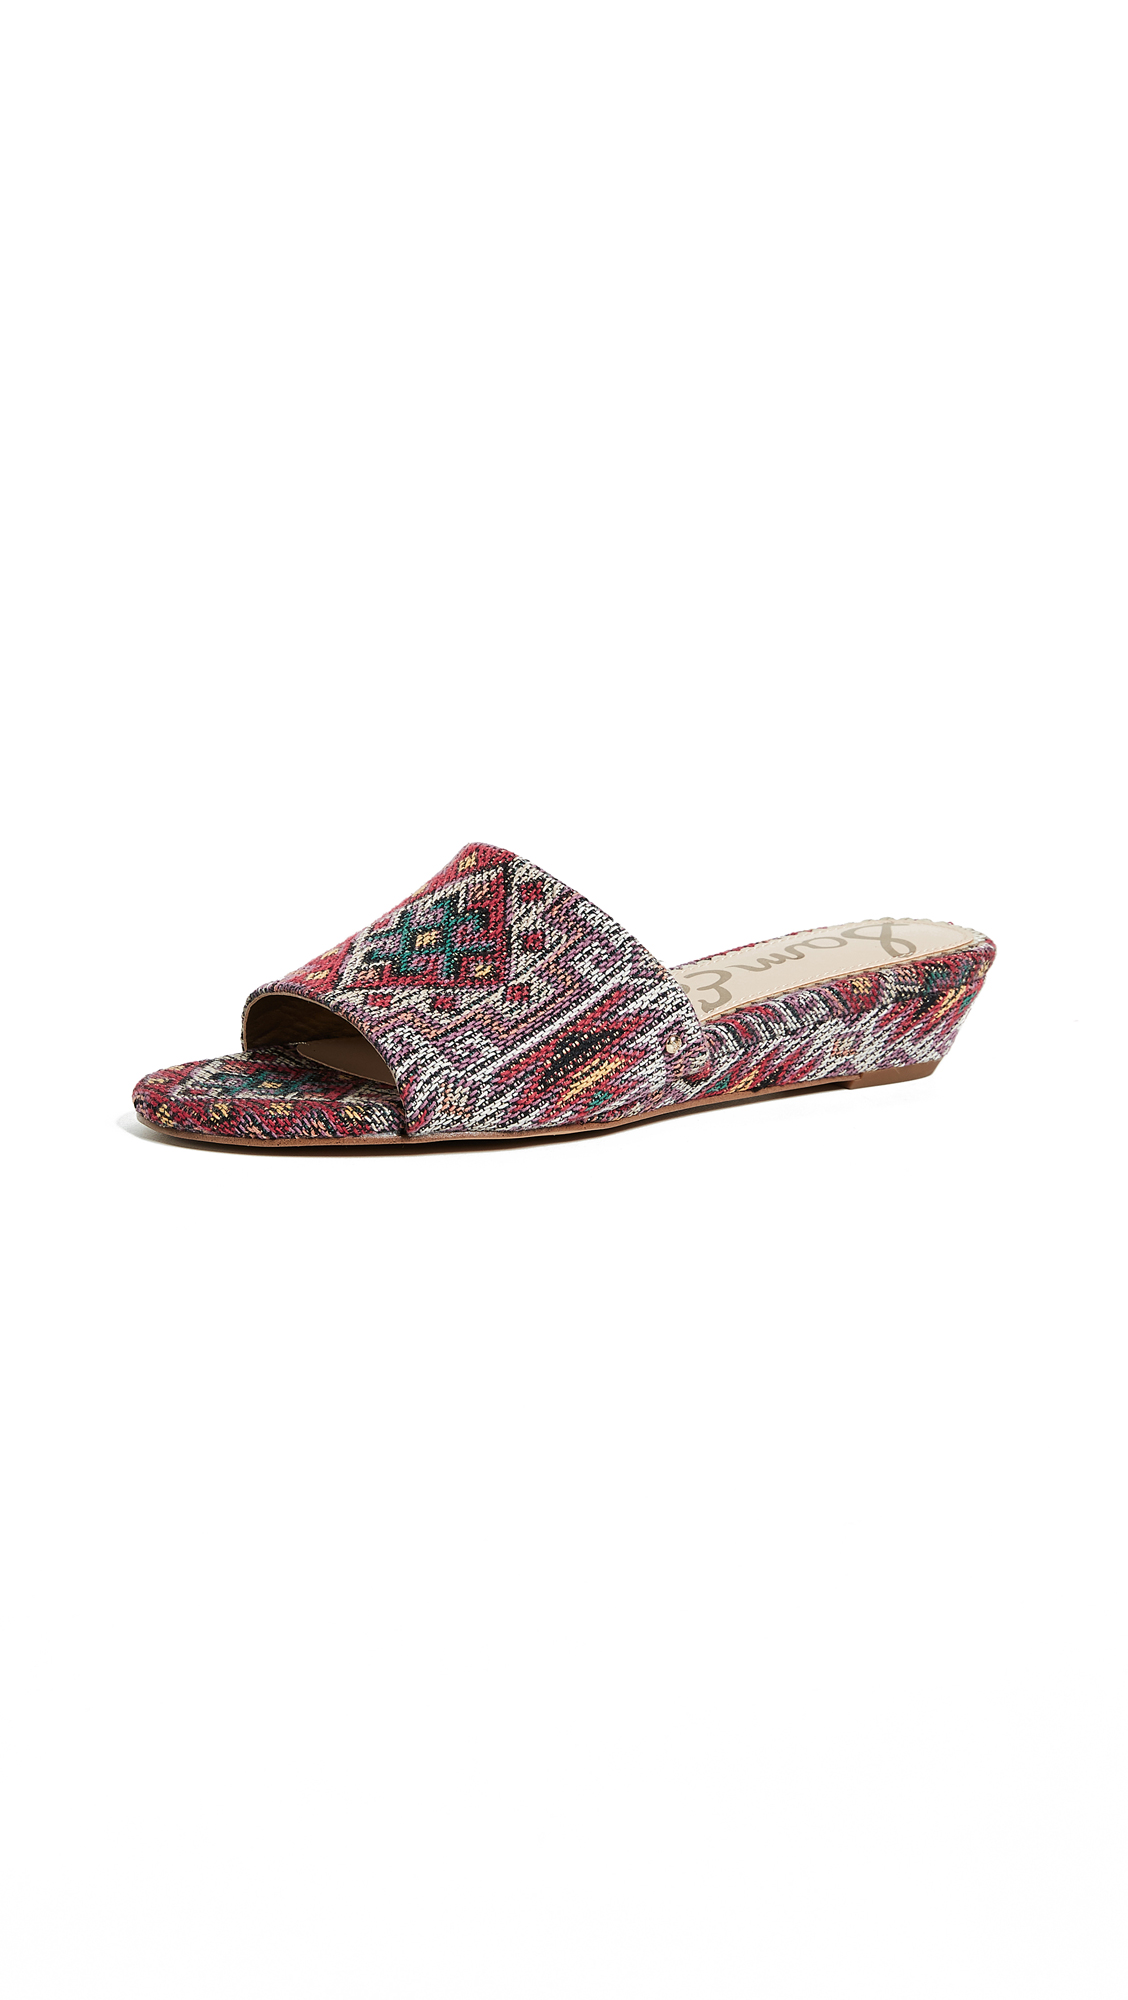 Sam Edelman Liliana Demi Wedge Slides - Red Multi